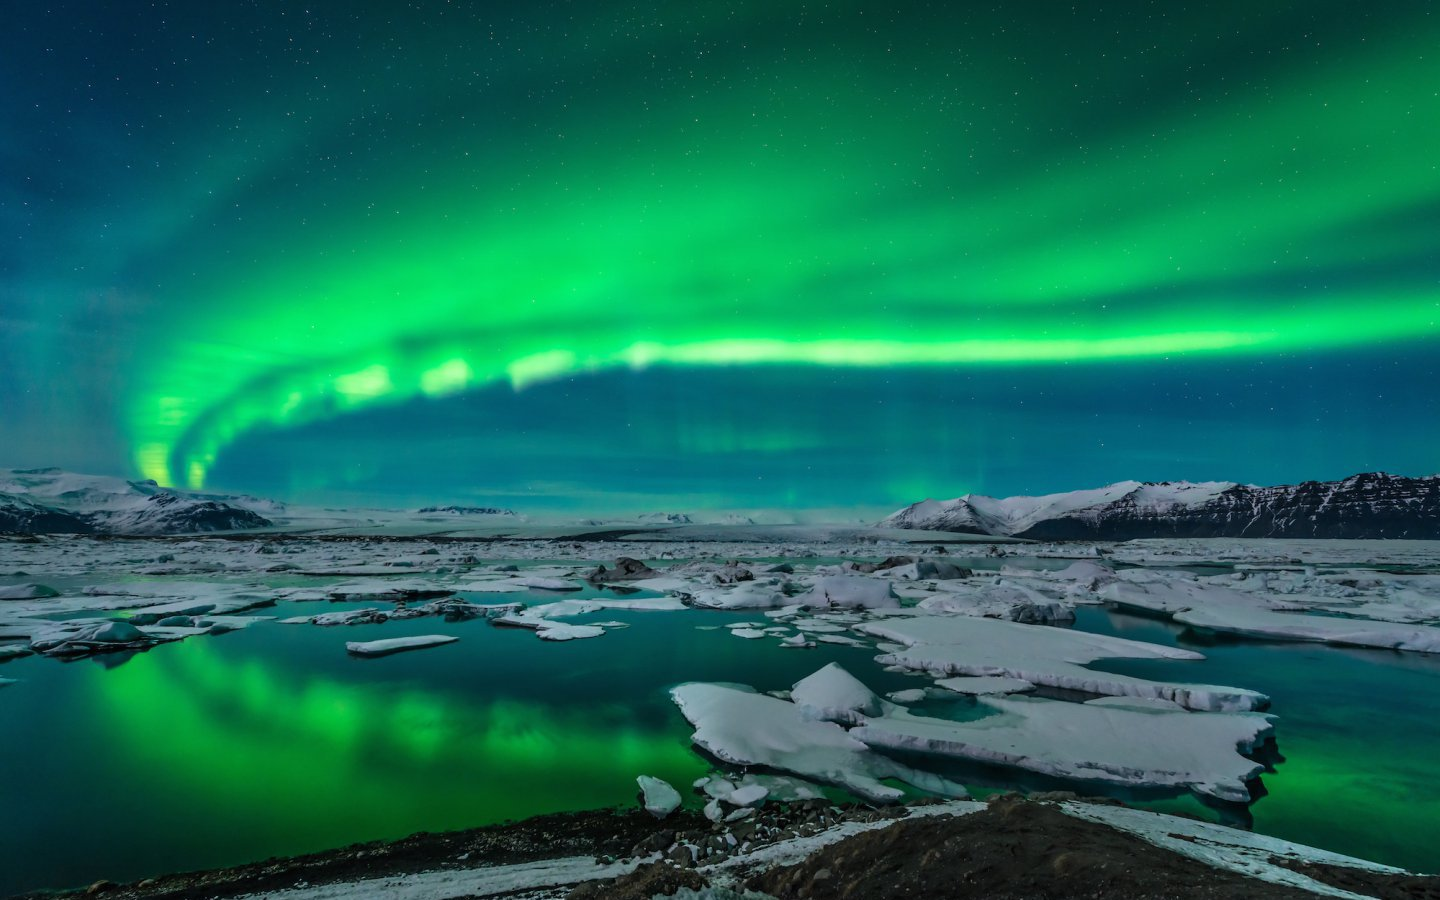 Northern Lights: the magical display known as the aurora borealis